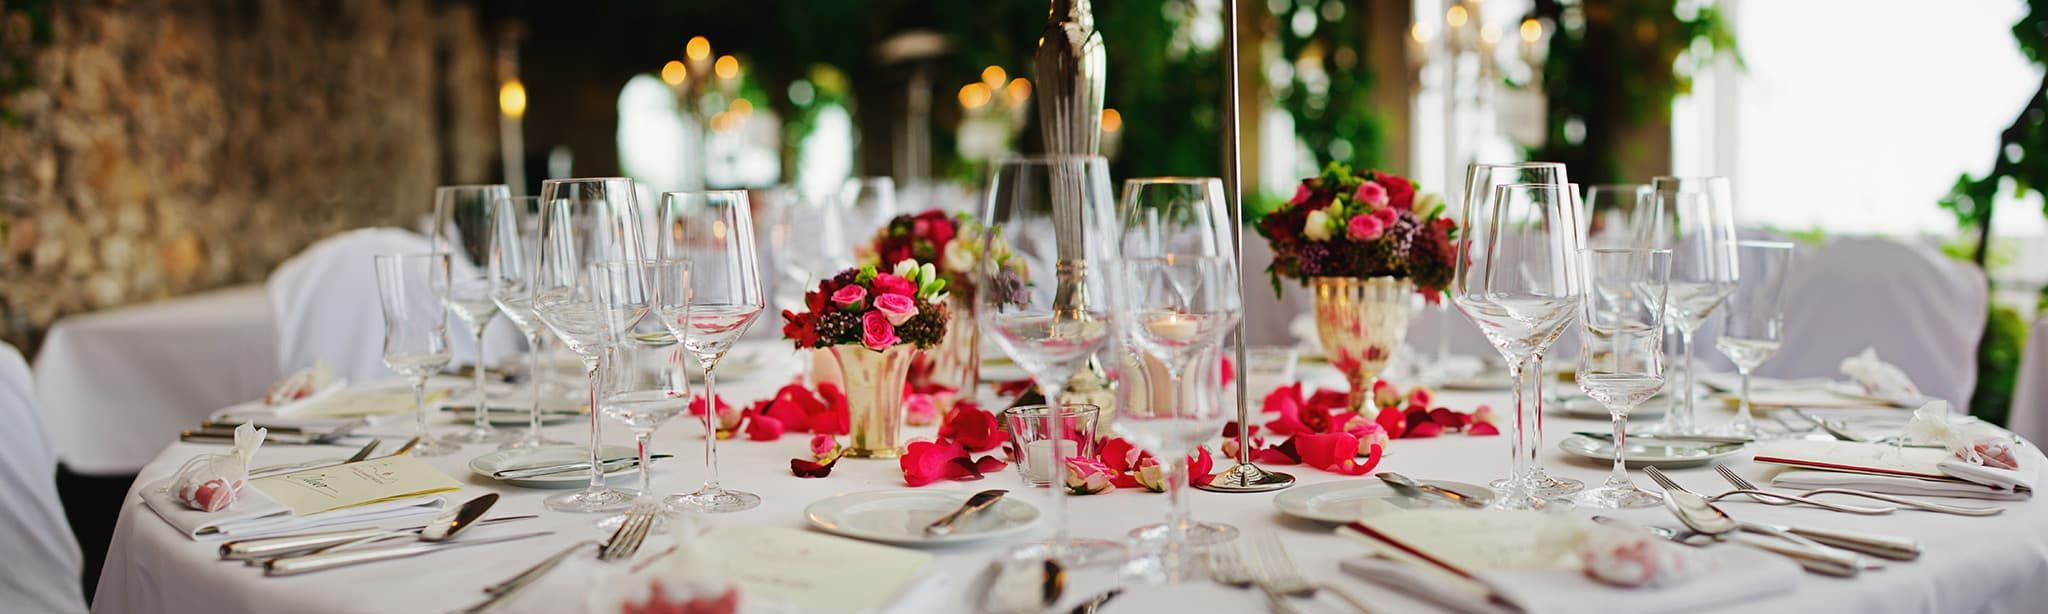 Beautiful table setting for a banquet